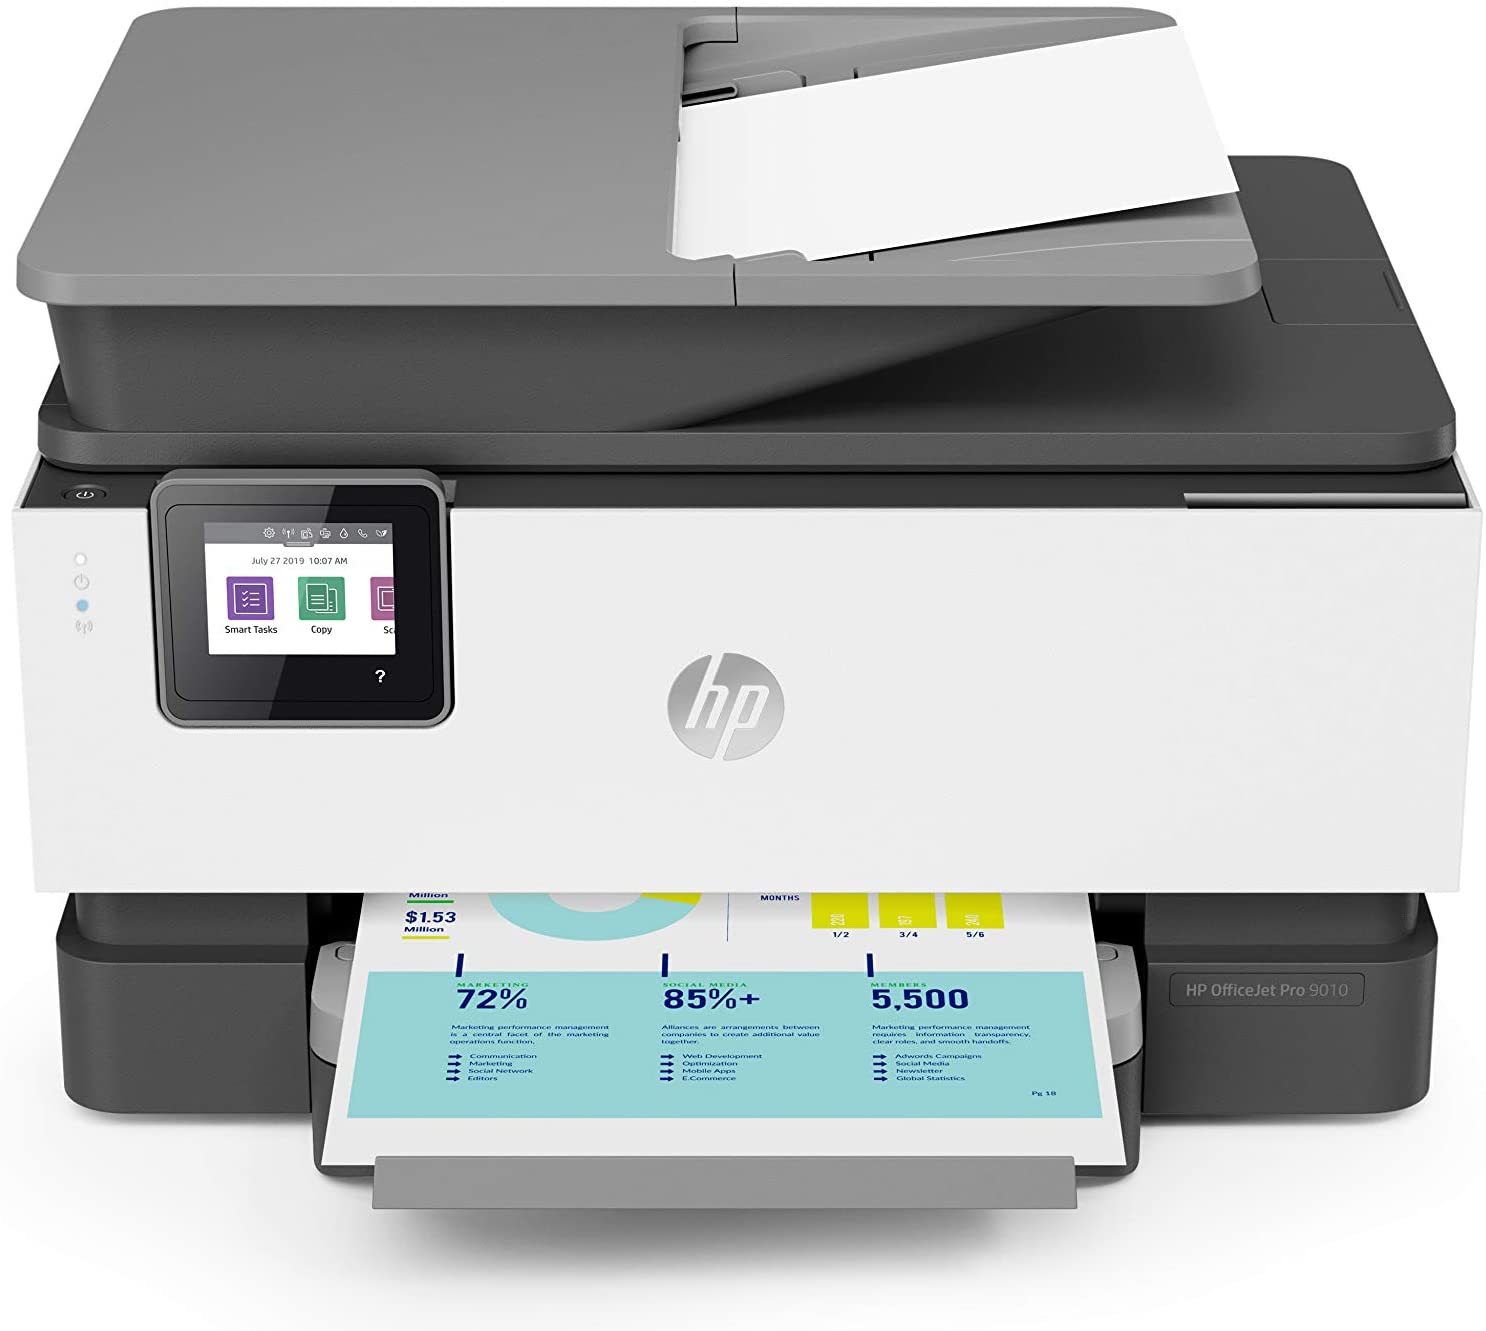 HP AIO OFFICEJET PRO 9010 / 3UK83B